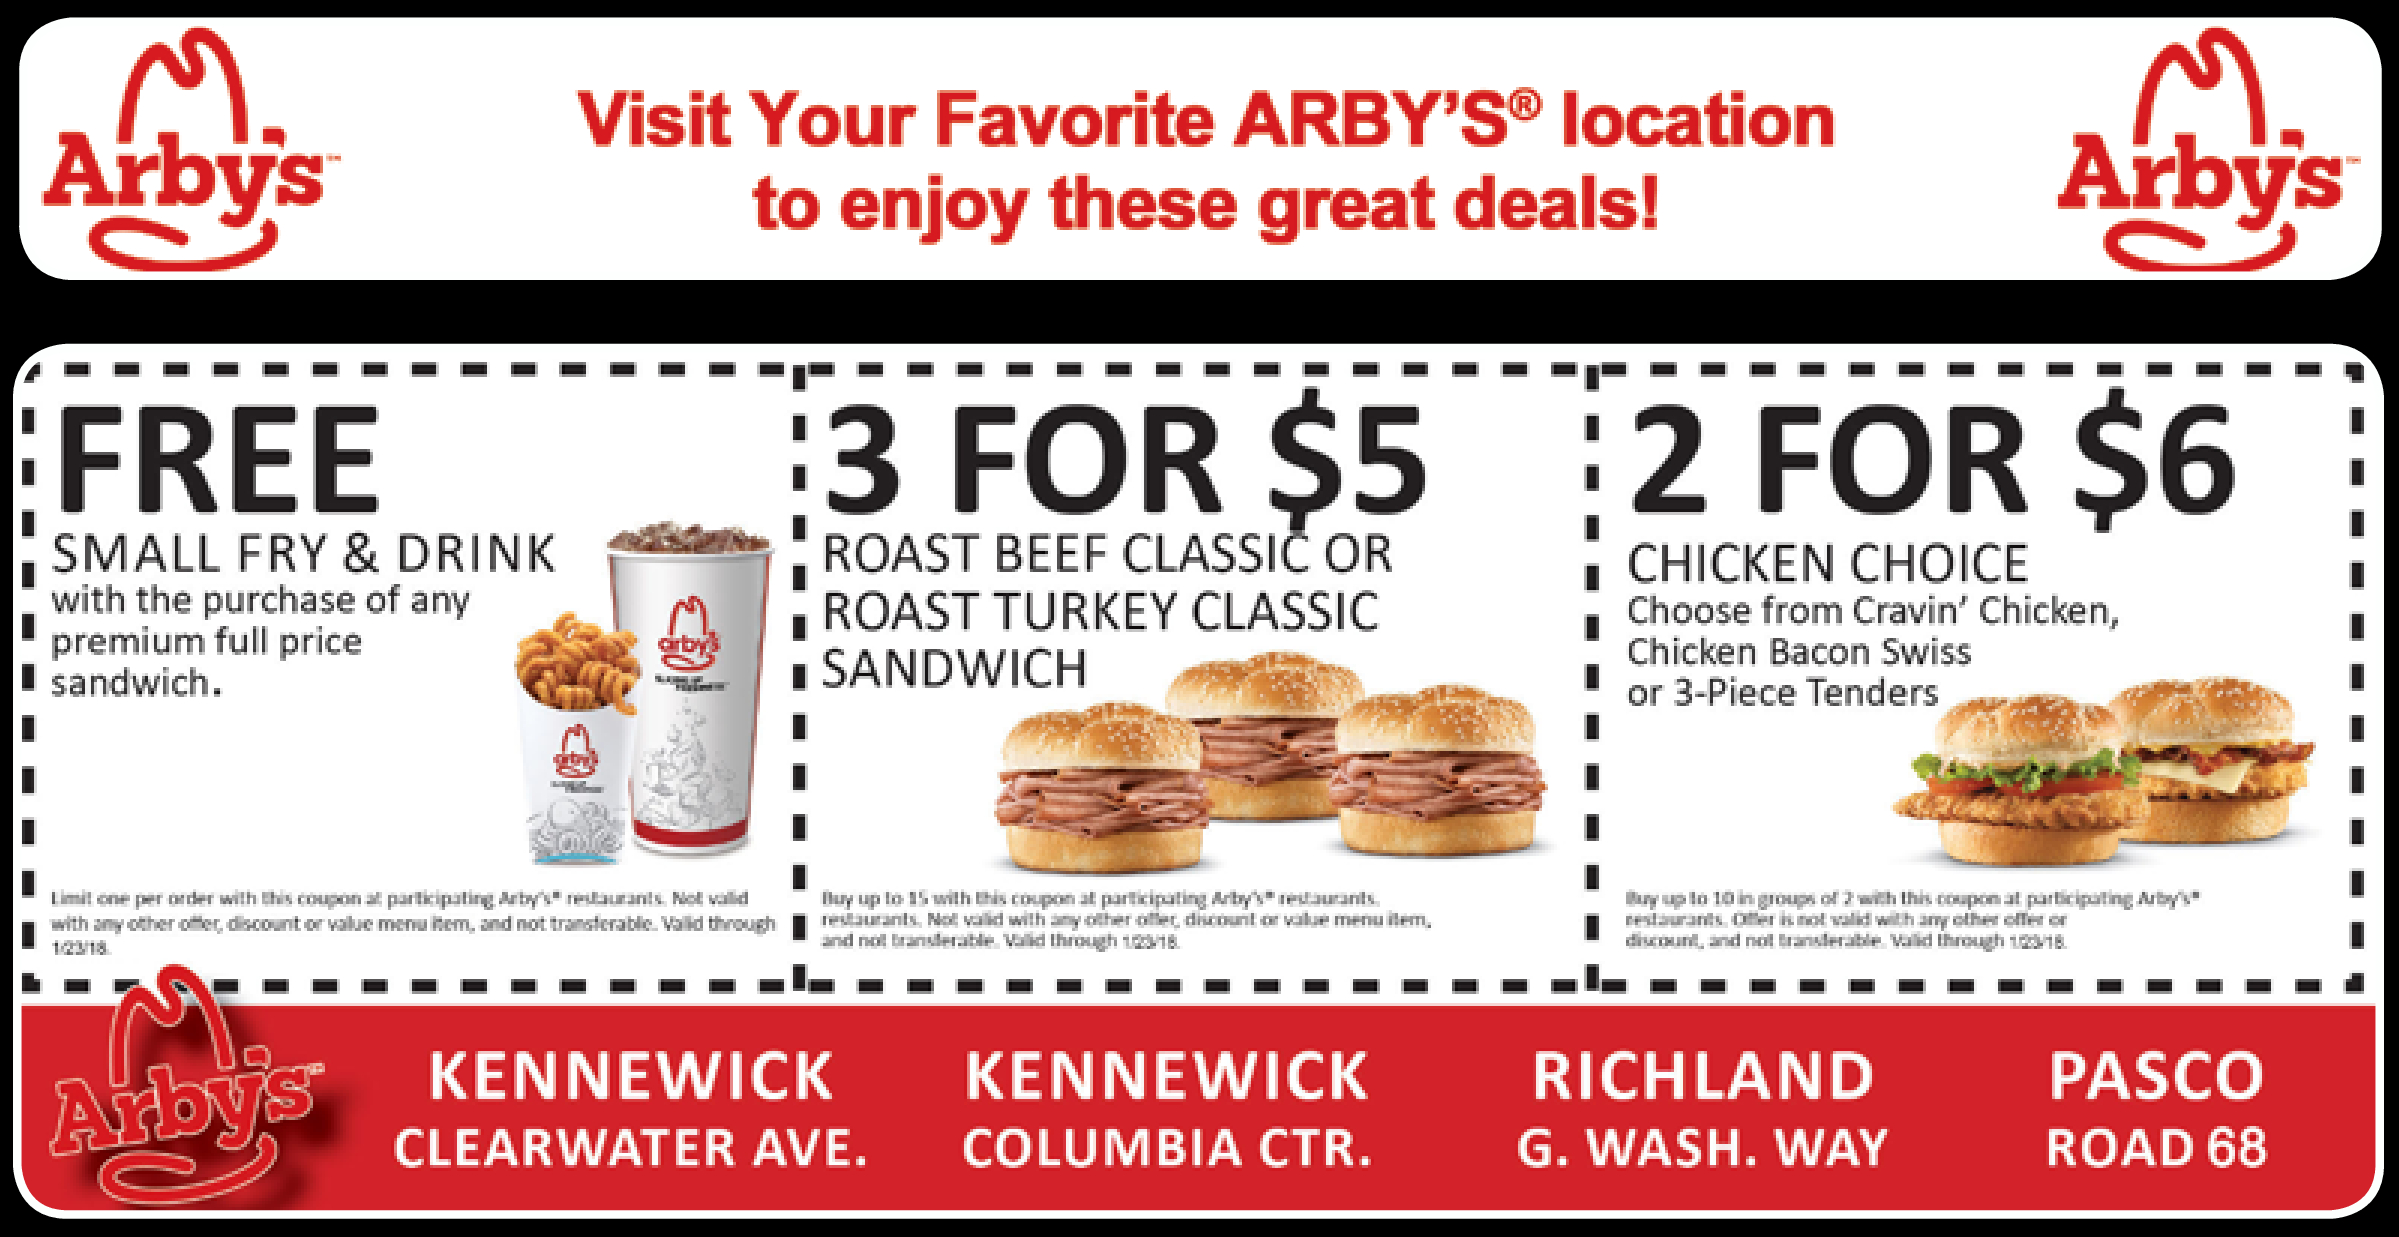 Printable Local Coupons, Free Restaurant Coupons Online - Hometown - Free Online Printable Fast Food Coupons